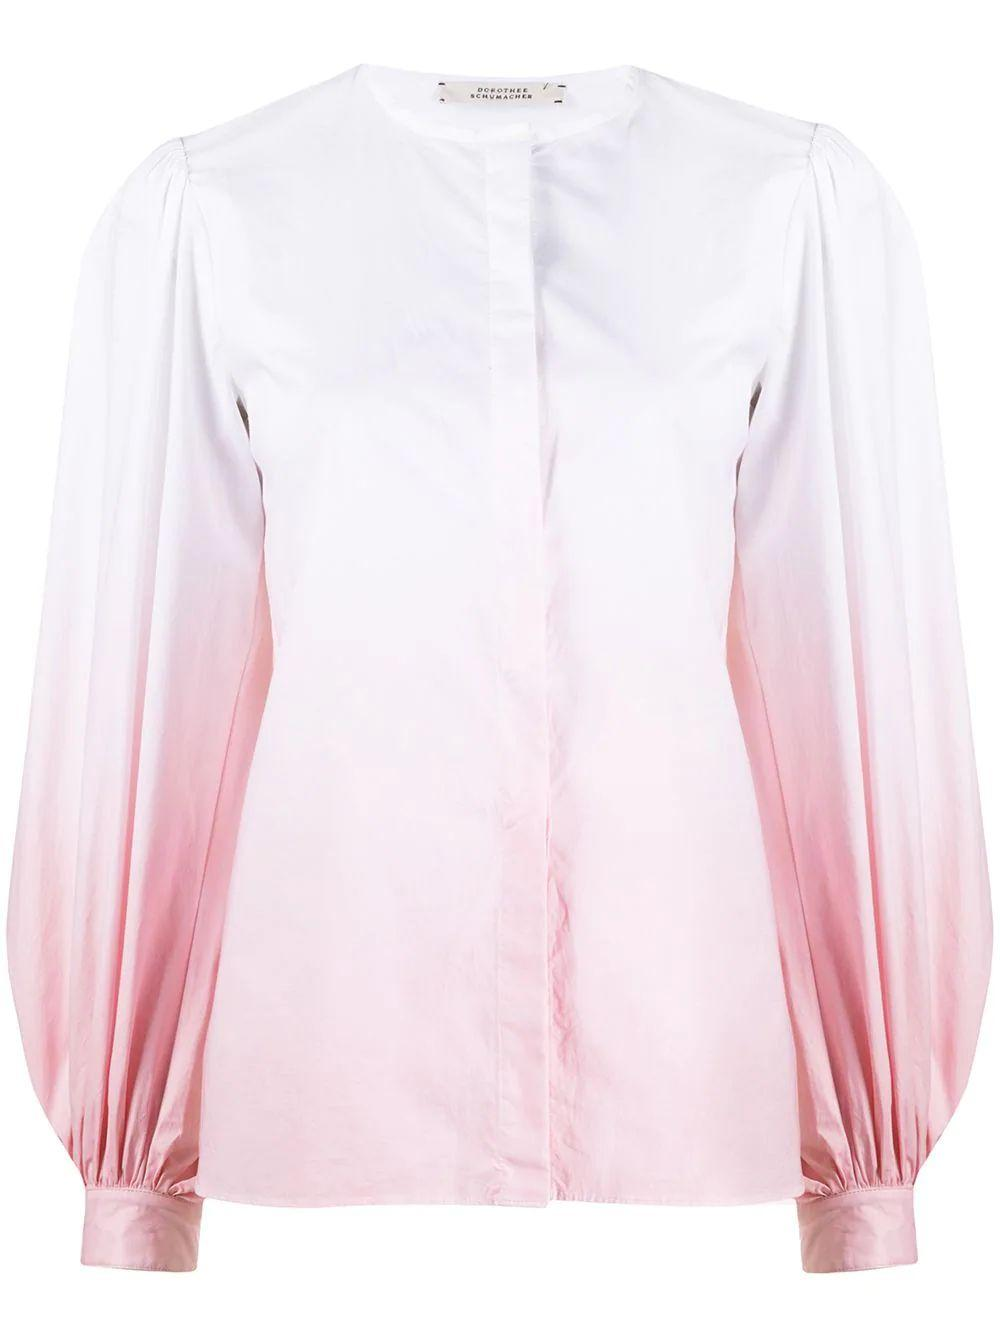 Rising Freshness Blouse